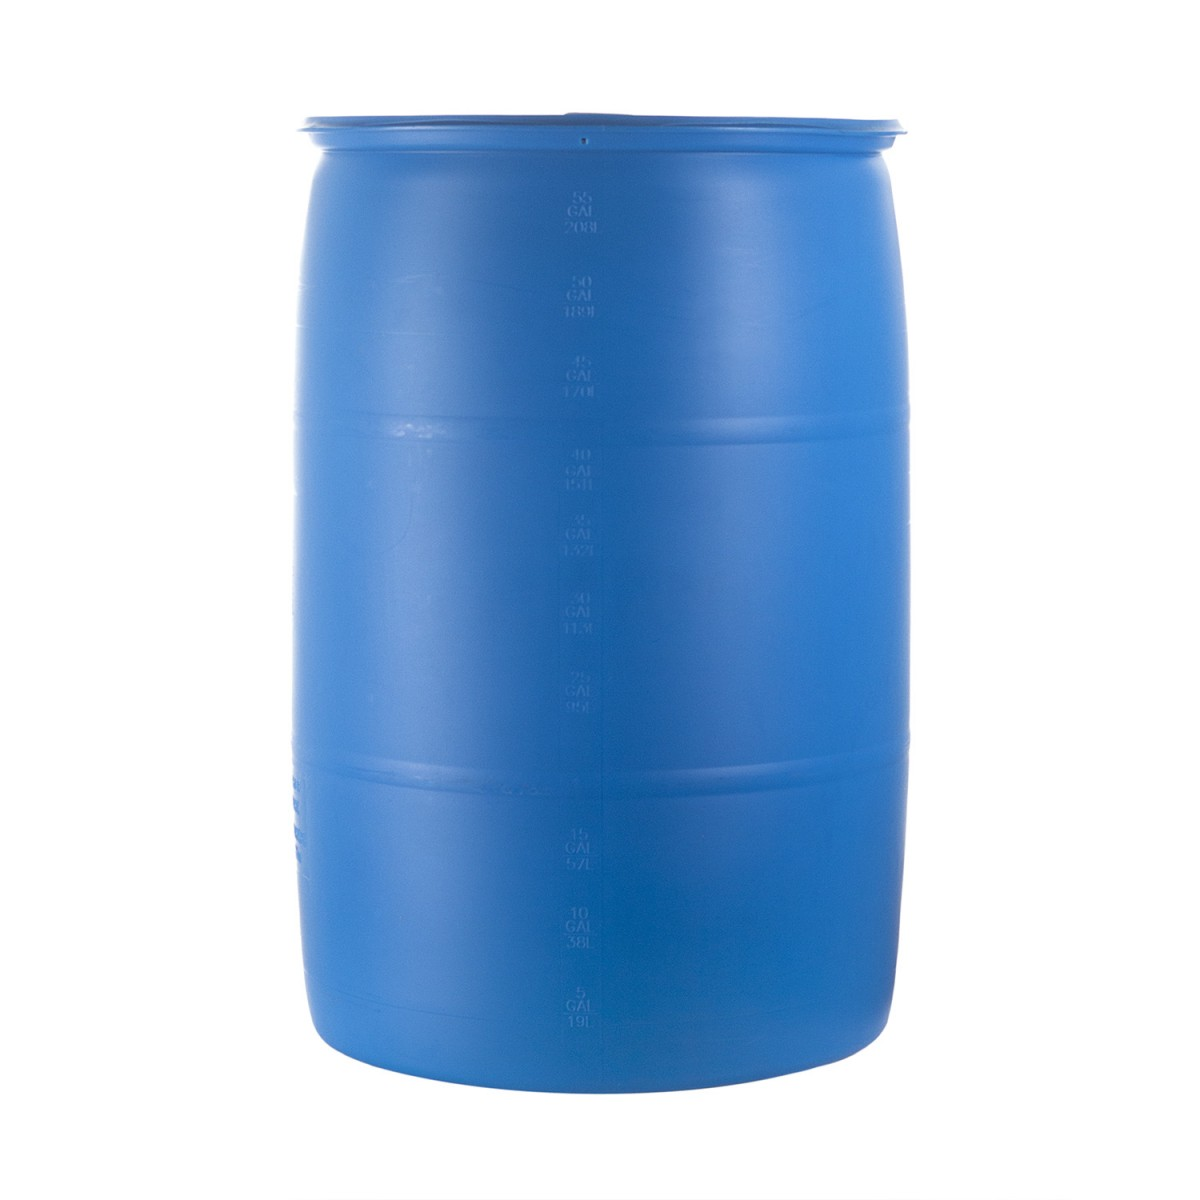 Emergency Supplies: H2O Barrel